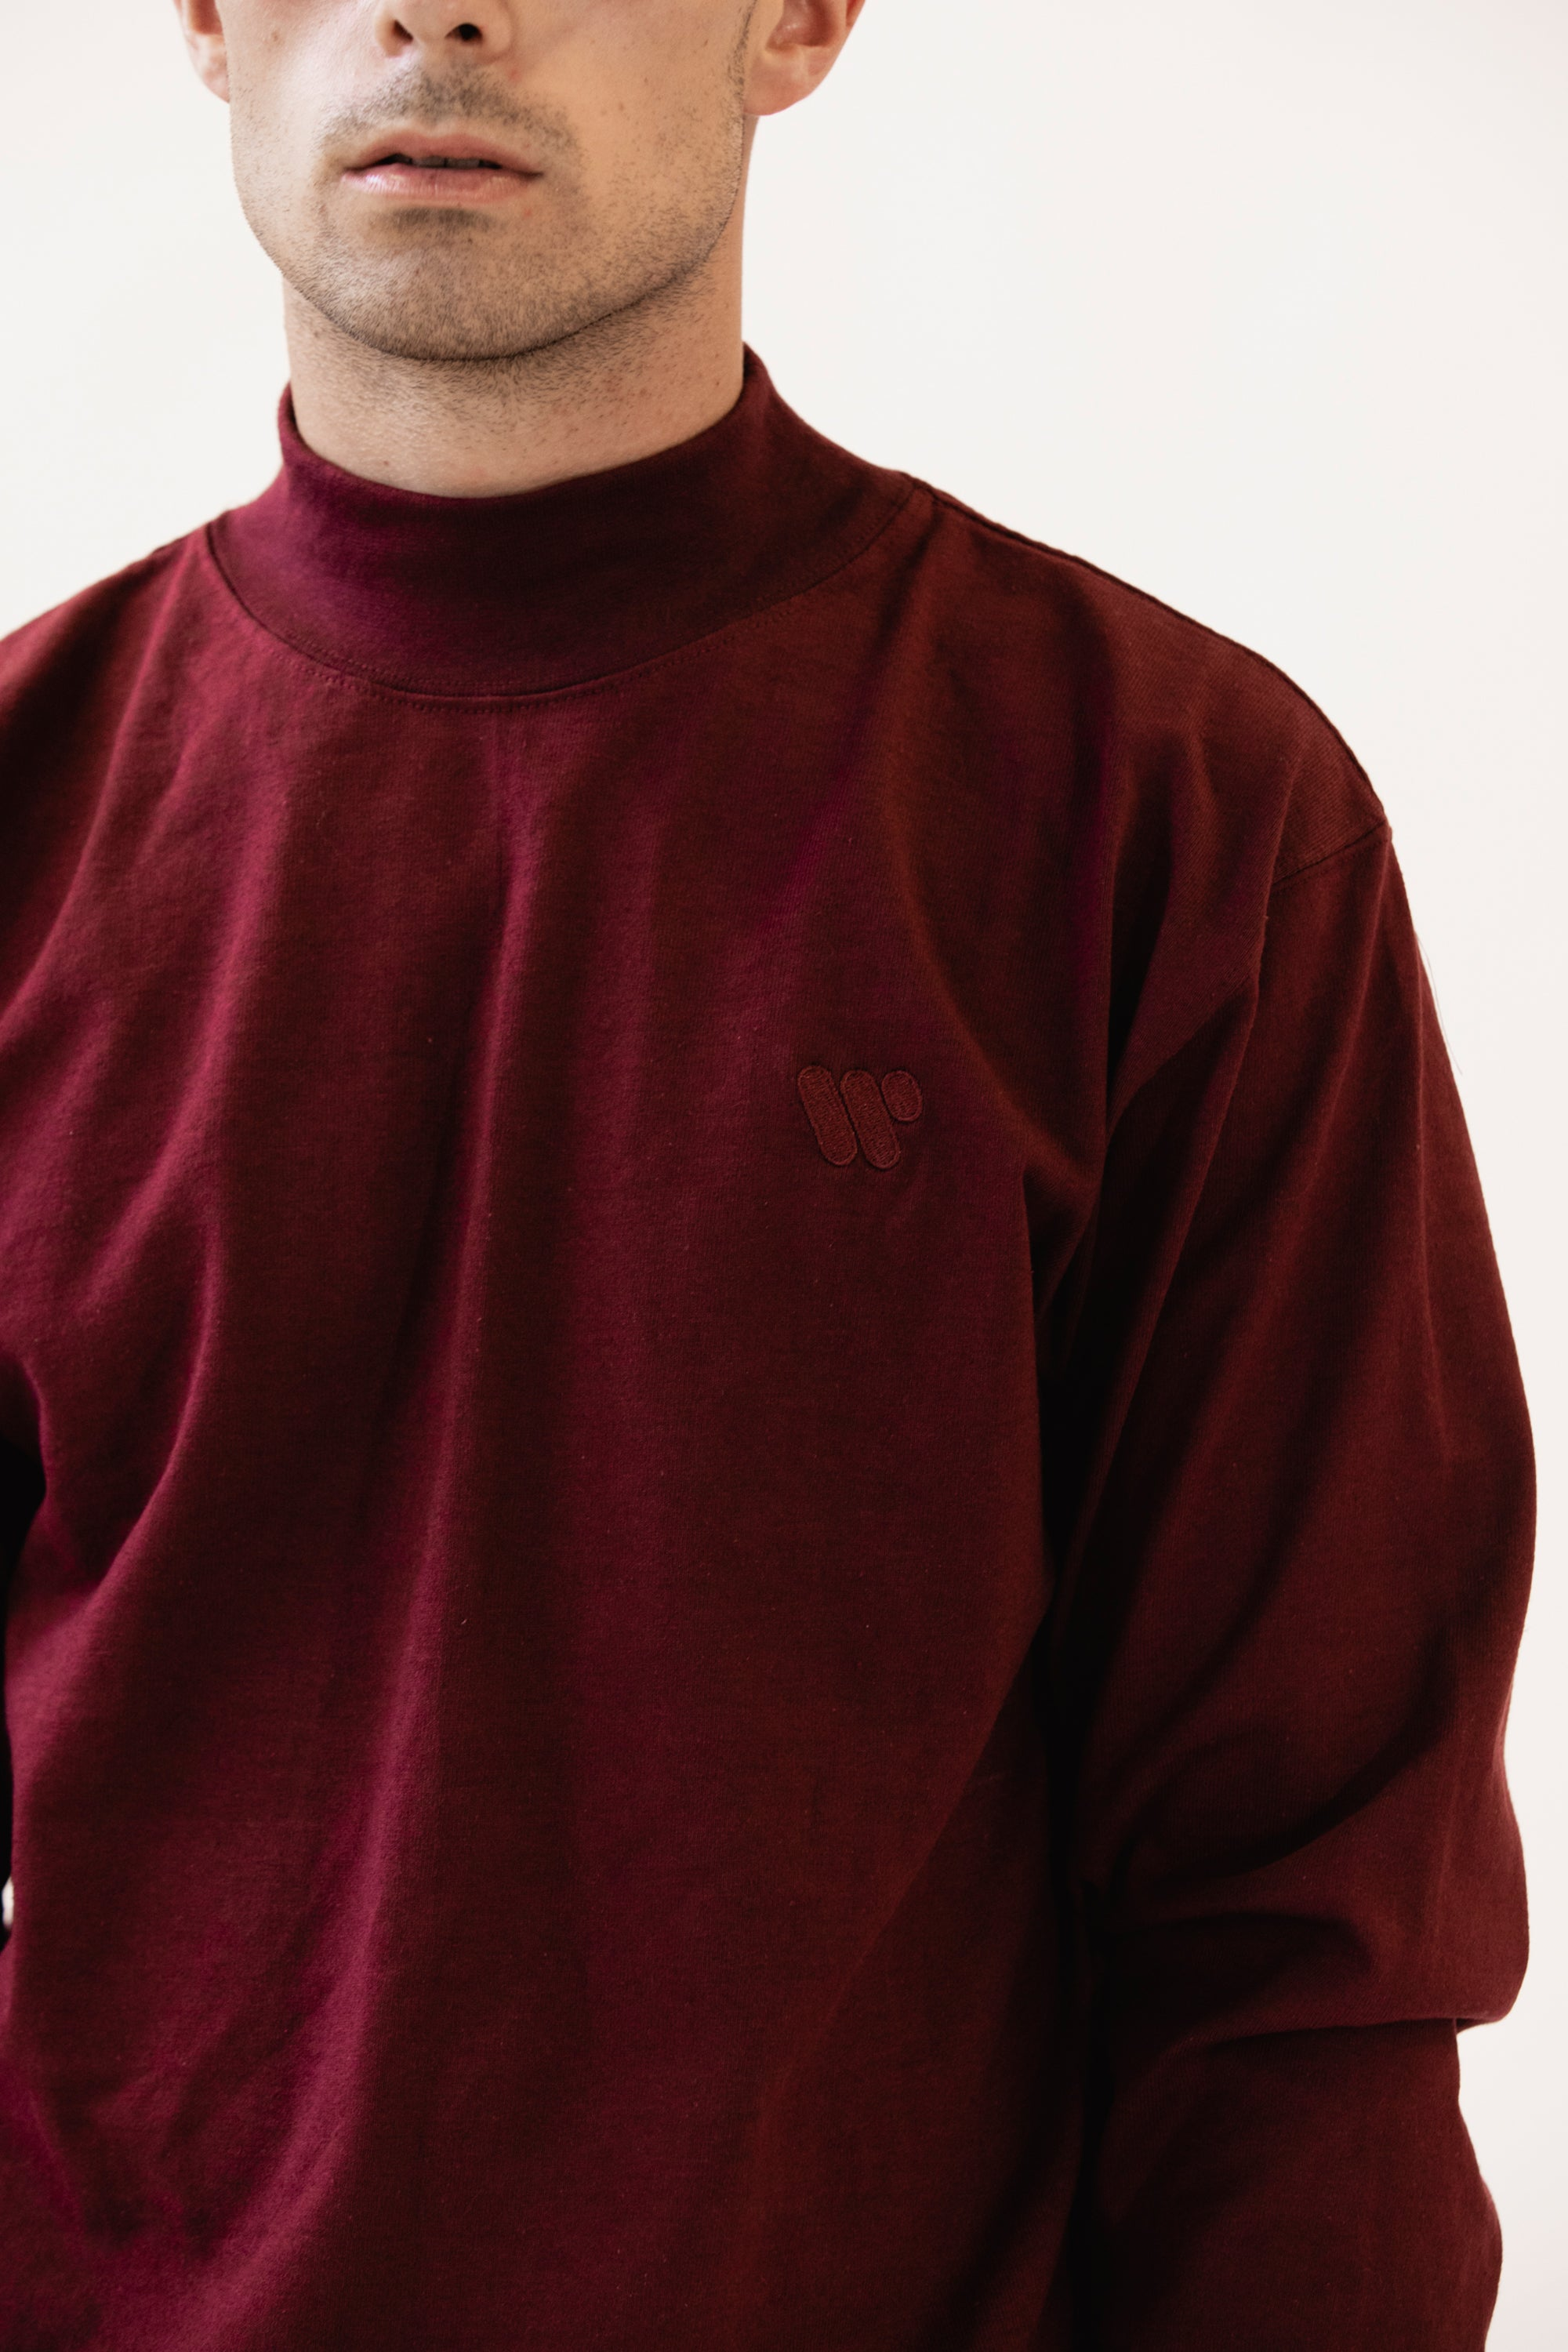 Range Mock Turtleneck Burgundy